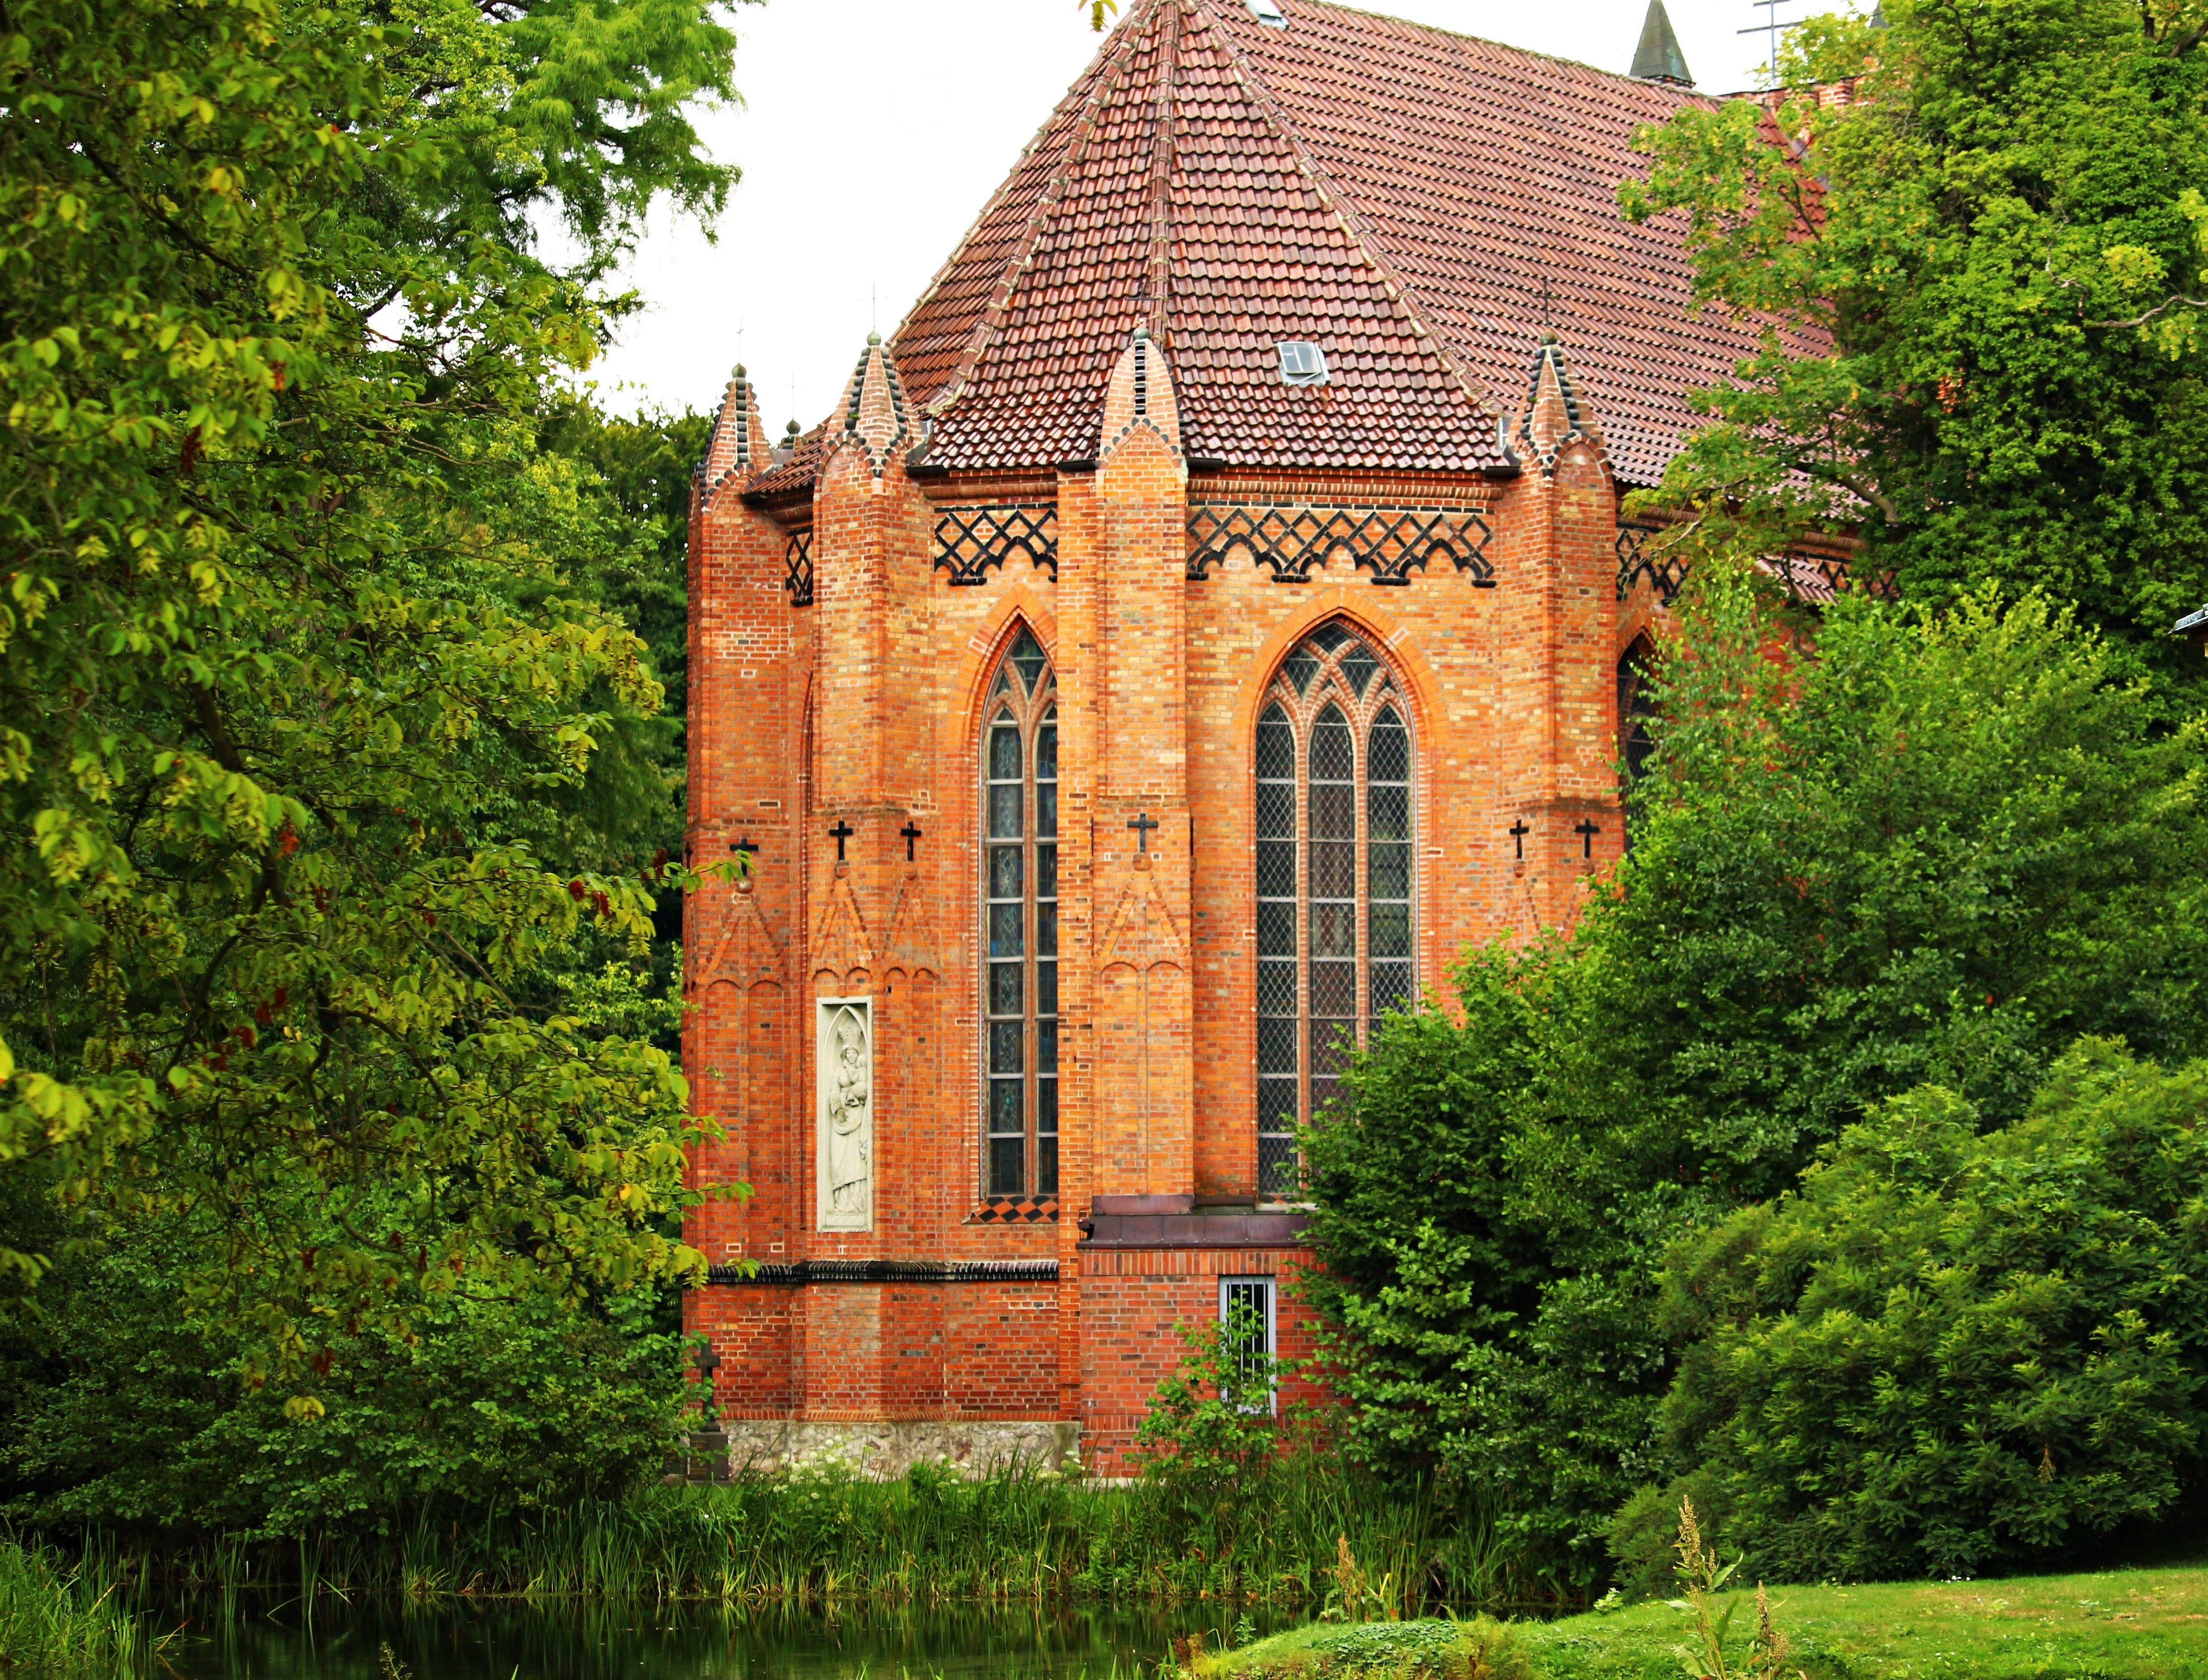 Built Structure With Trees in Foreground, Architecture, Bricks, Building, Church, HQ Photo